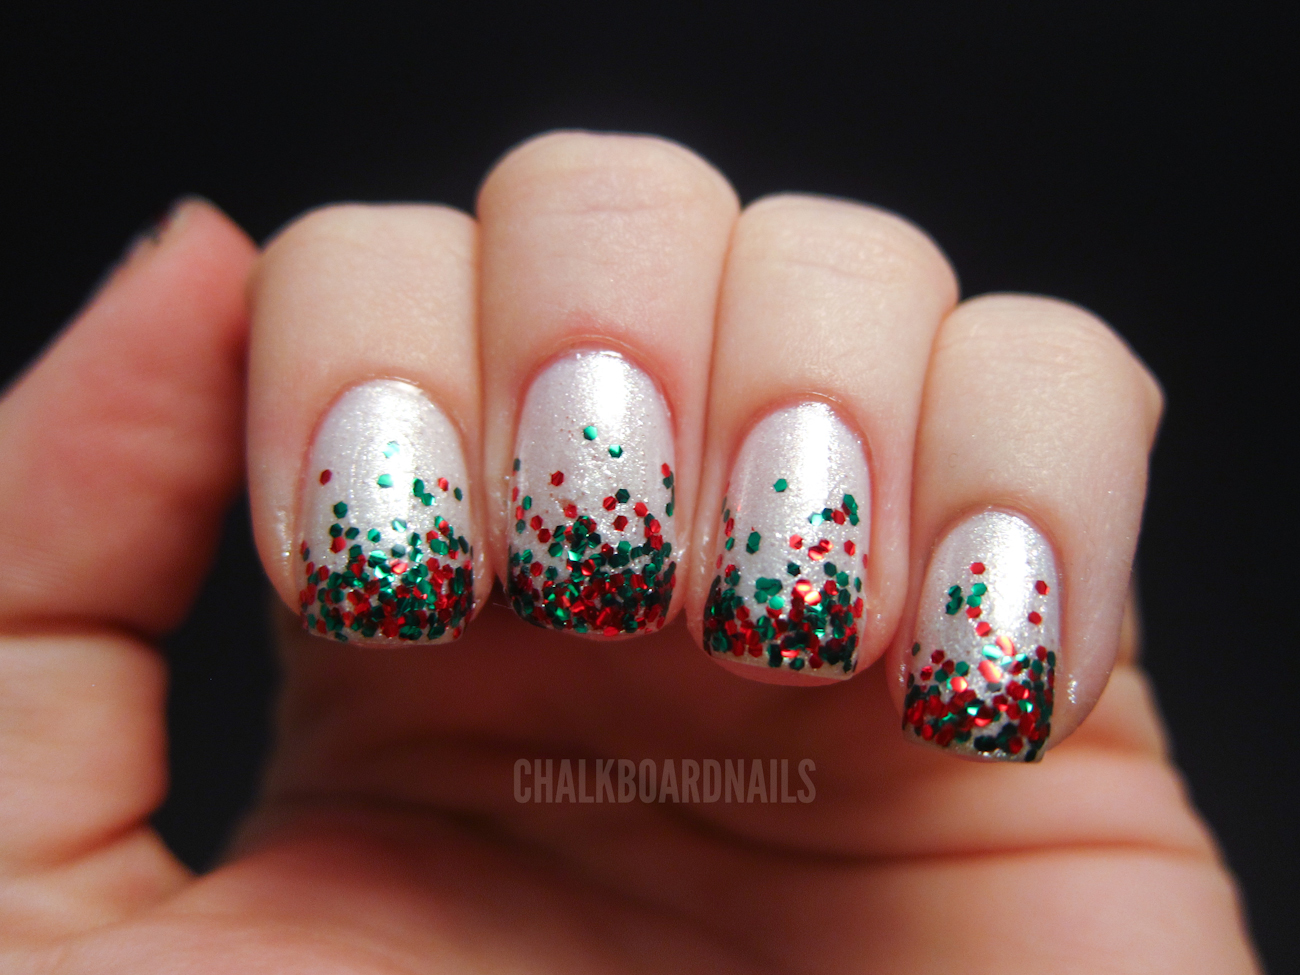 My Christmas Nails Chalkboard Nails Nail Art Blog